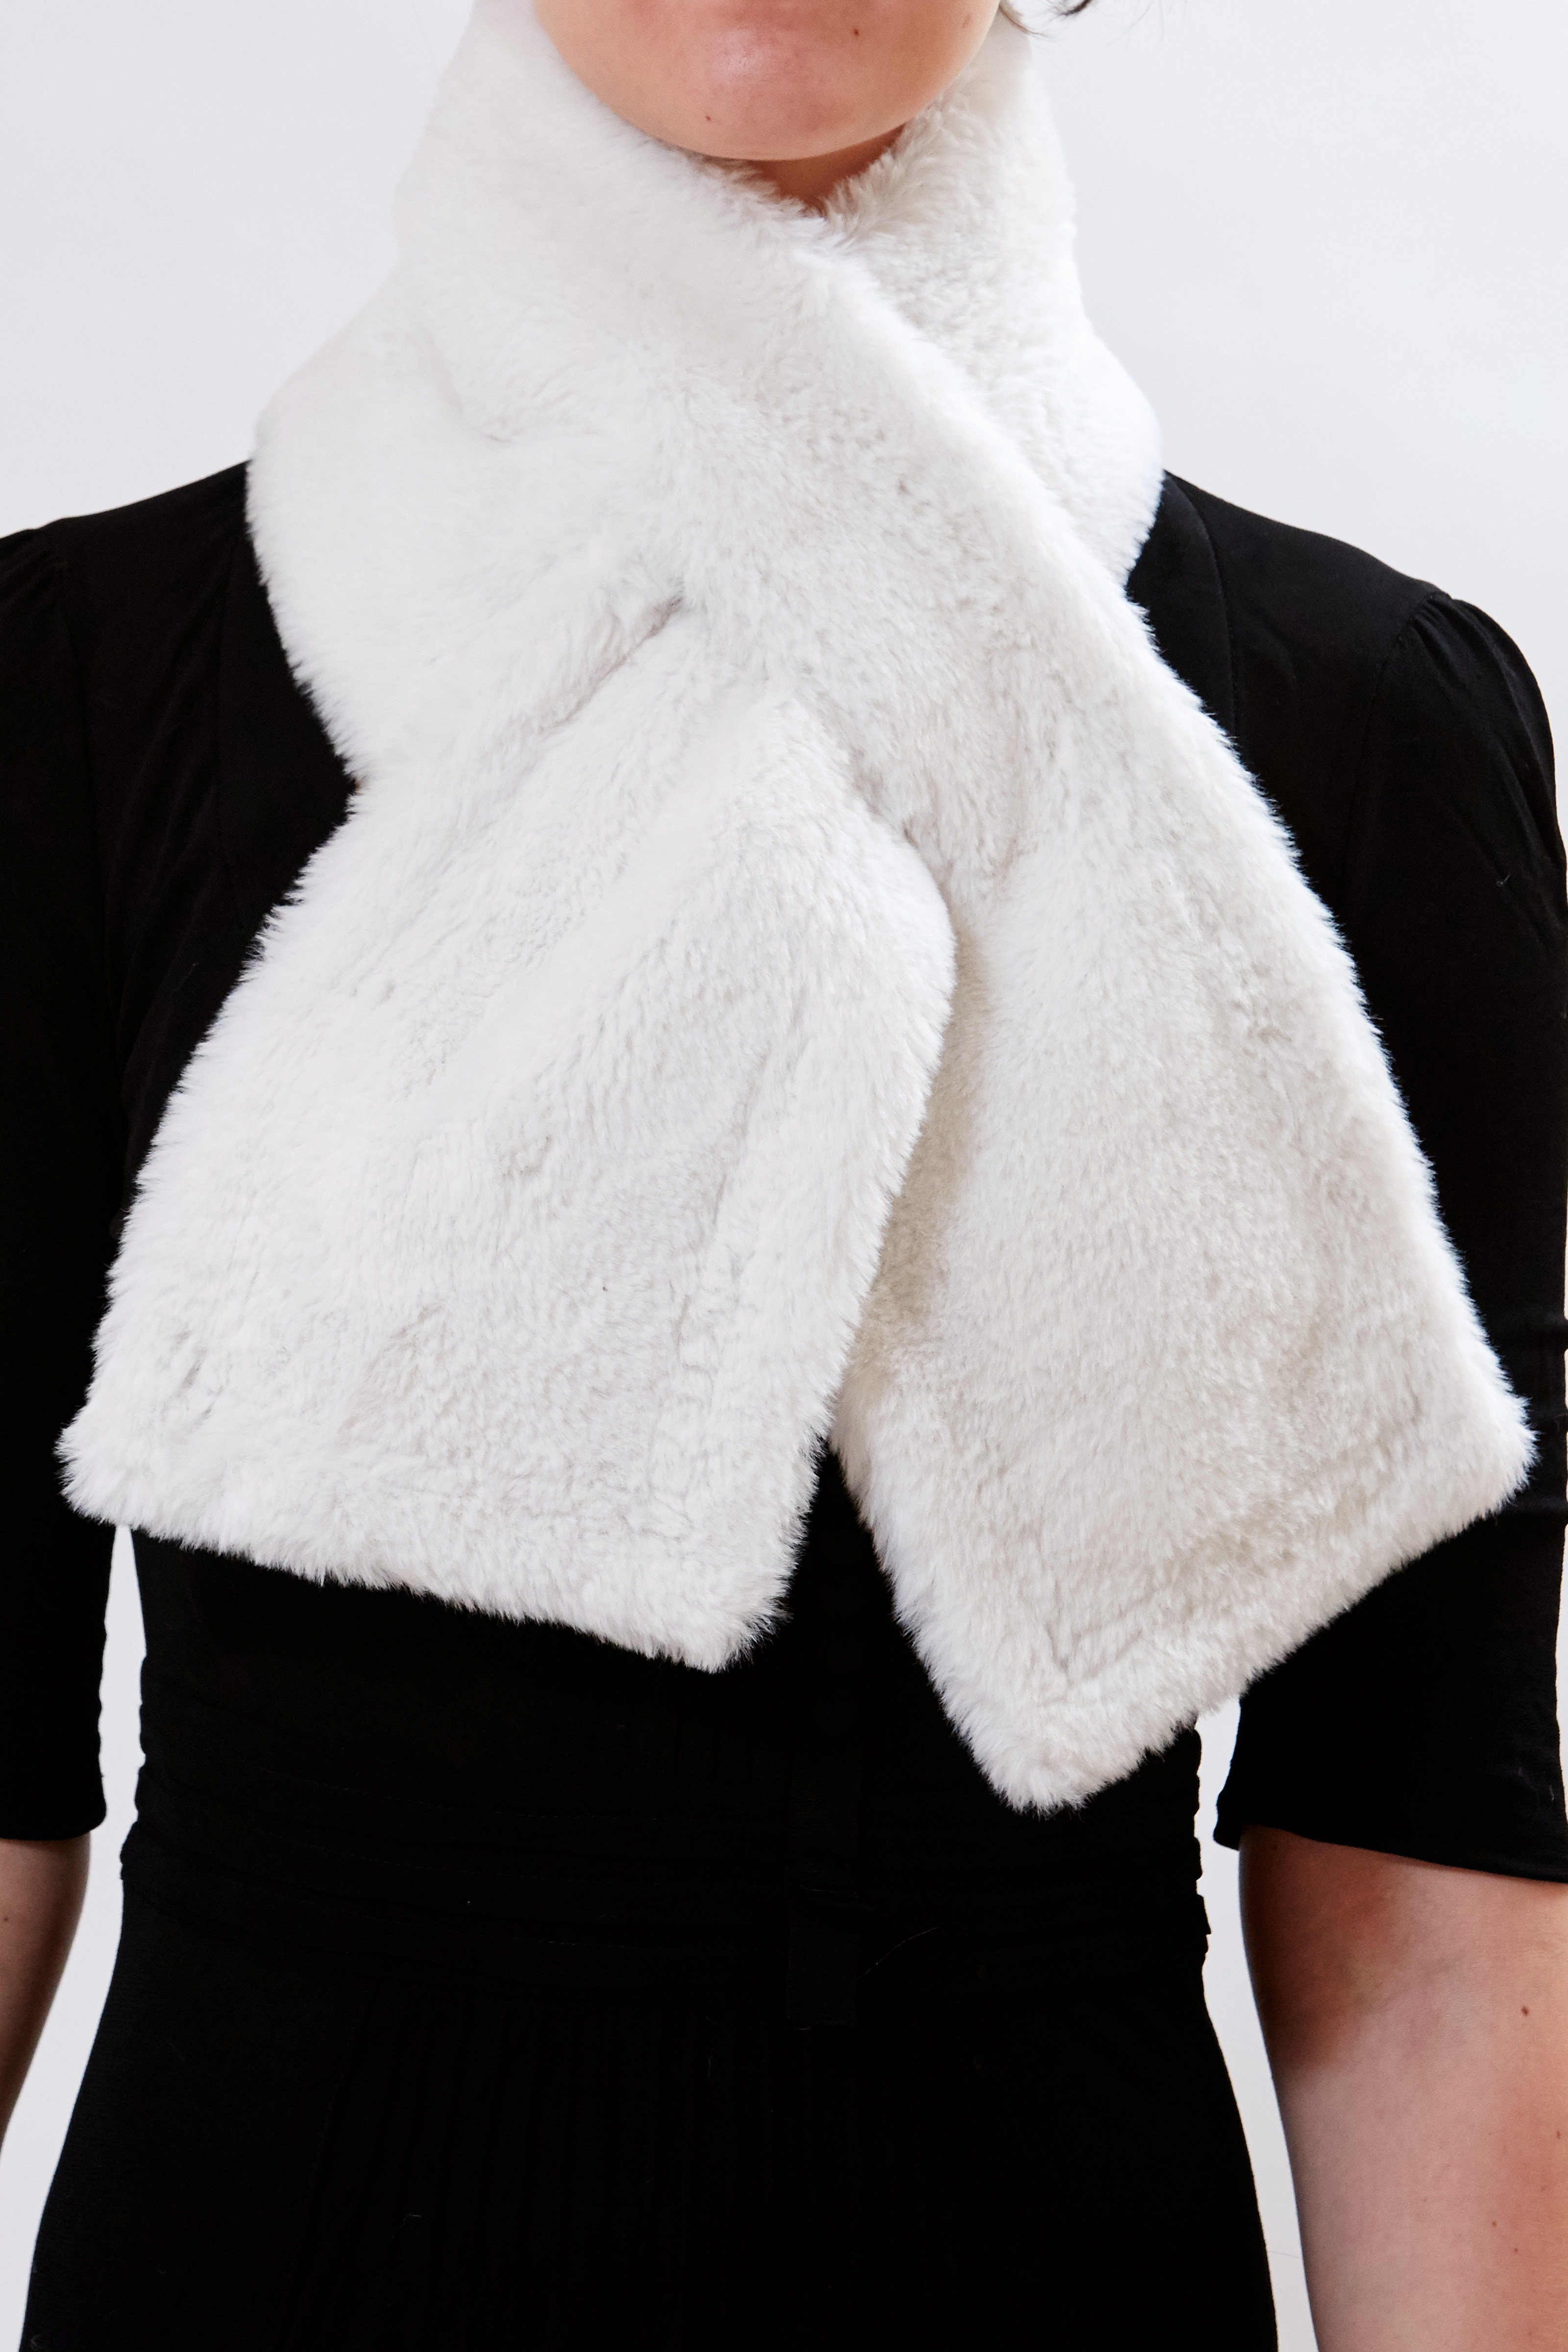 Scarf - Blanc by Maison Atia on curated-crowd.com